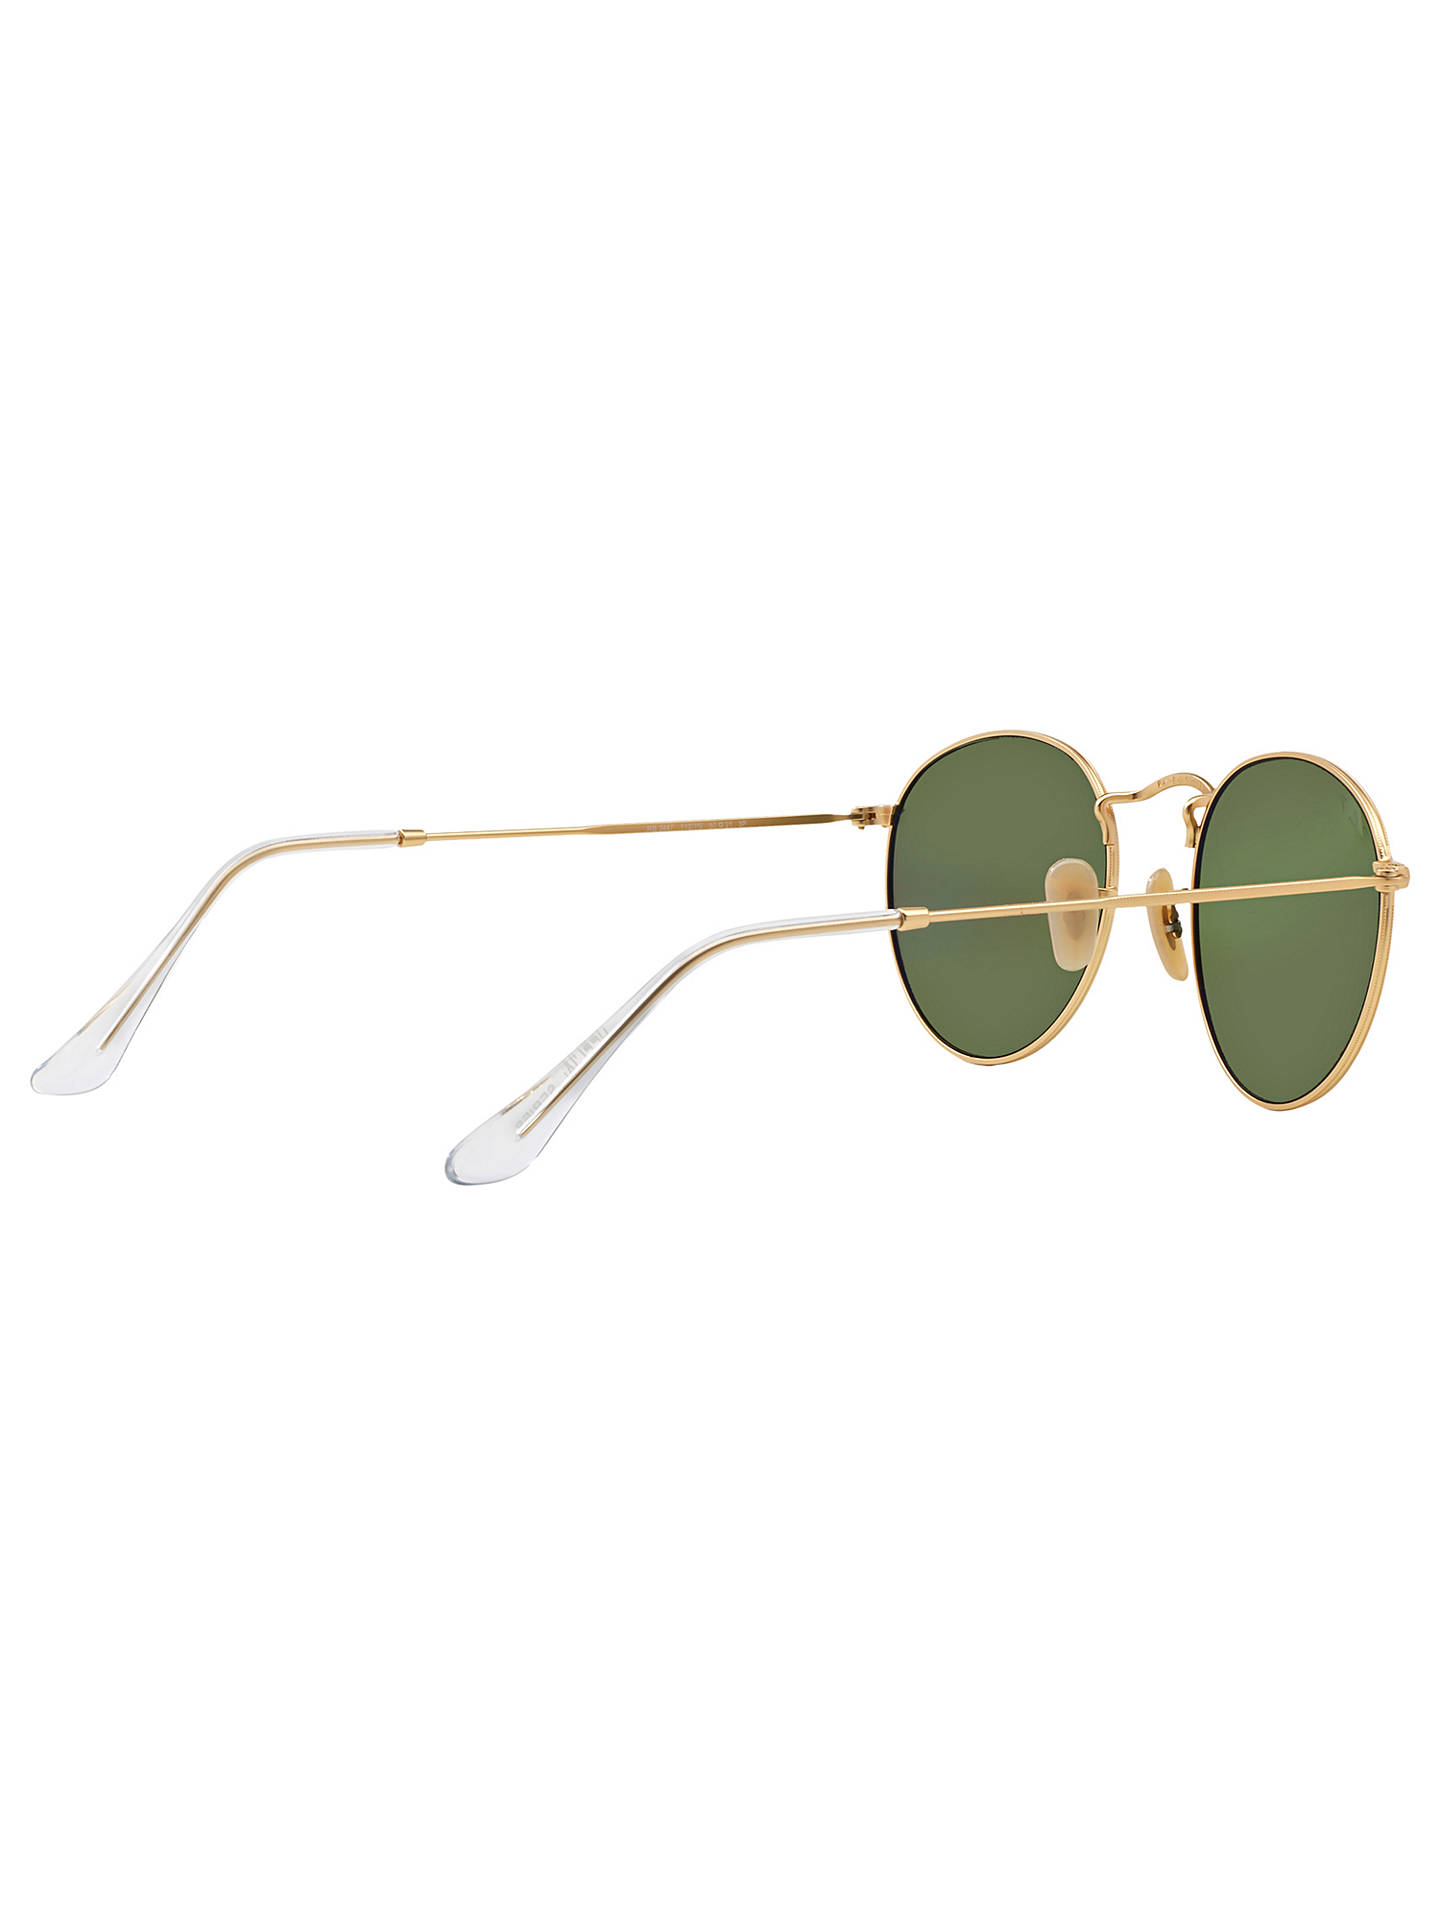 BuyRay-Ban RB3447 Polarised Oval Sunglasses, Gold/Mirror Green Online at johnlewis.com